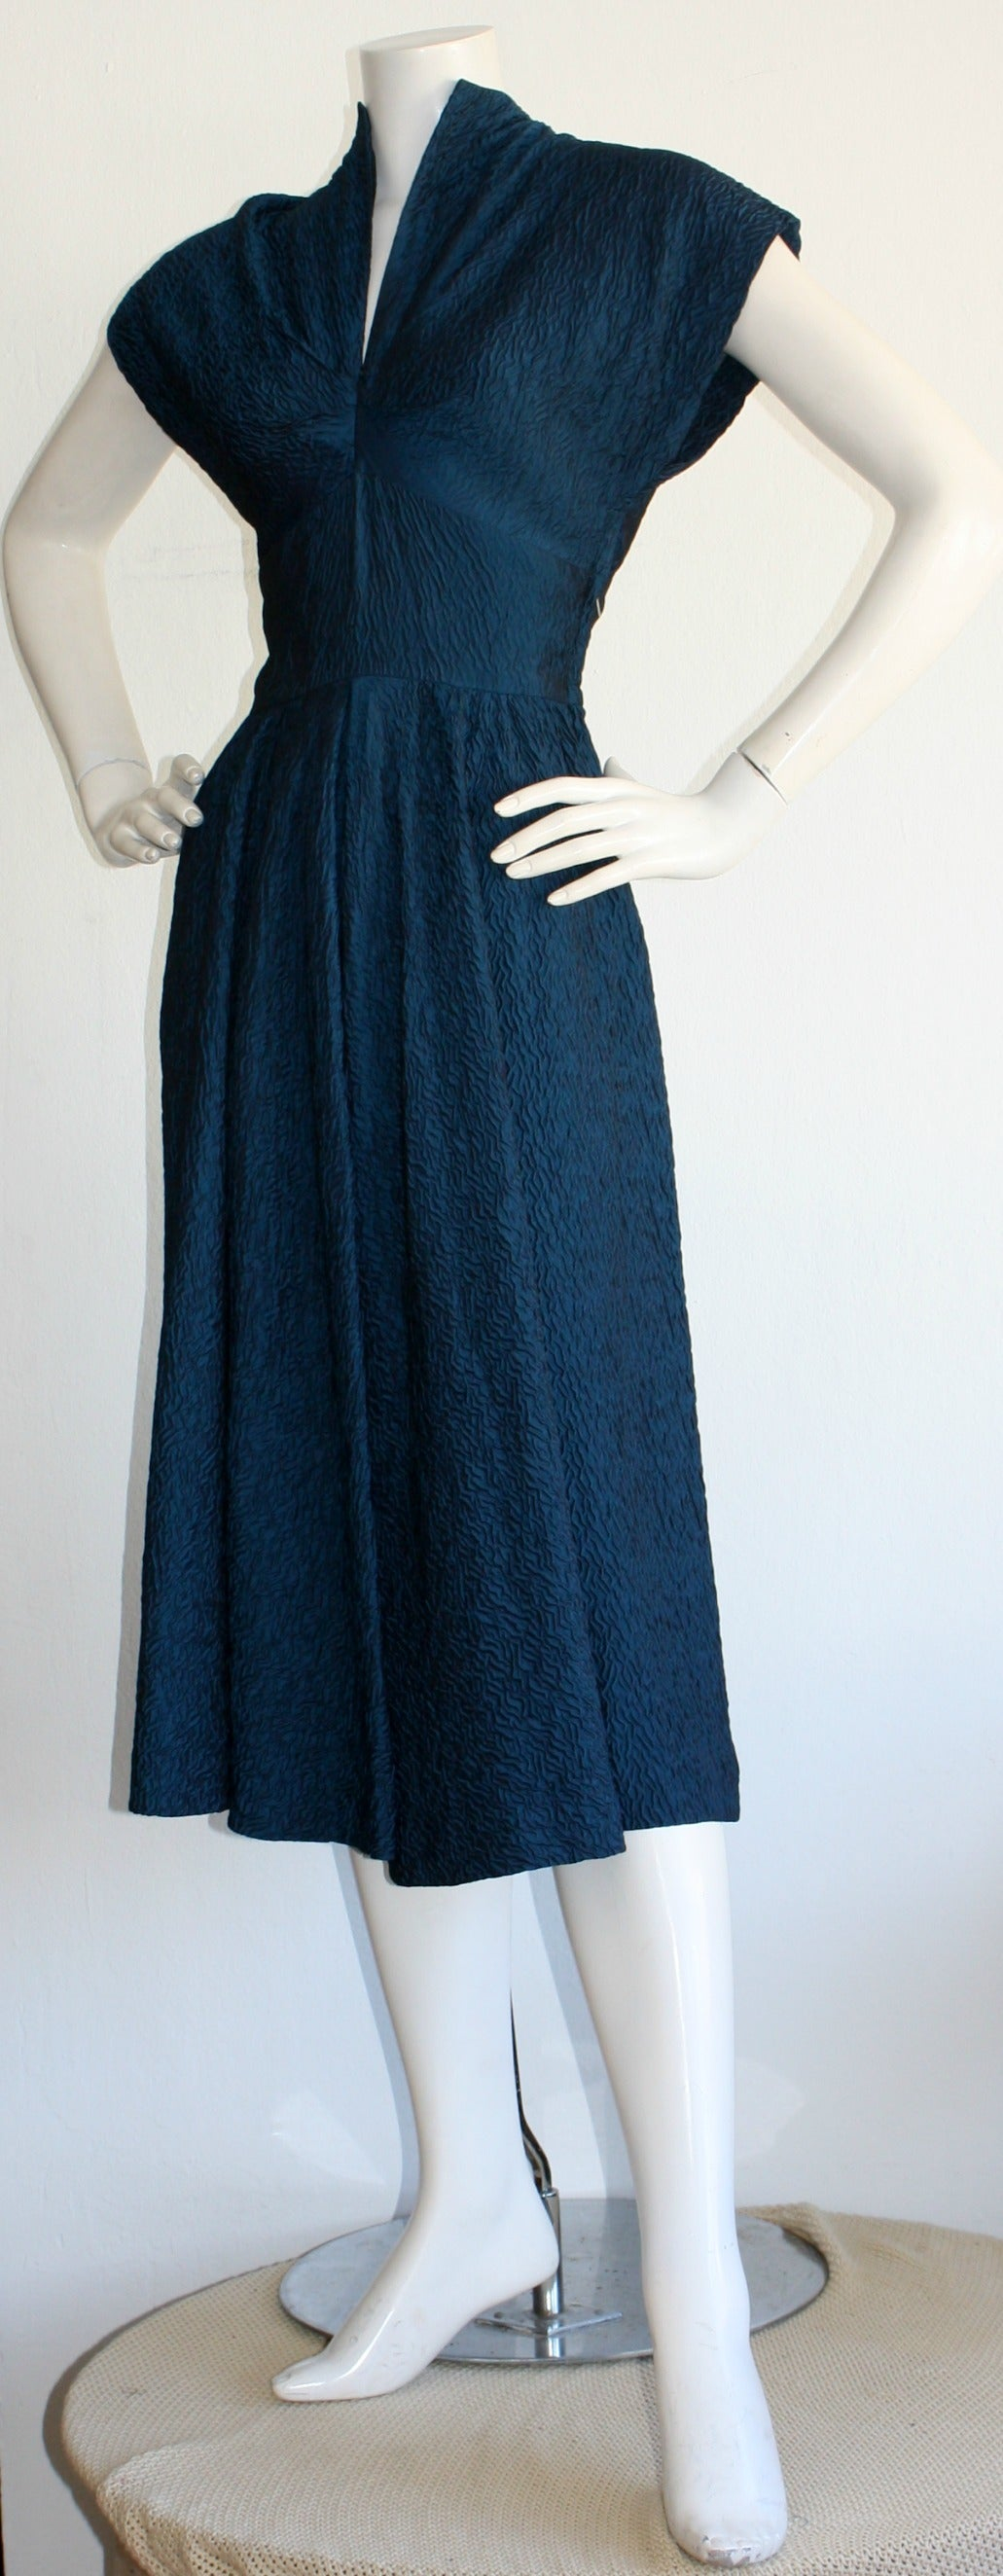 Ultimate Vintage 1940s Dress Blue Textured Silk W/ Dramatic Neck 5